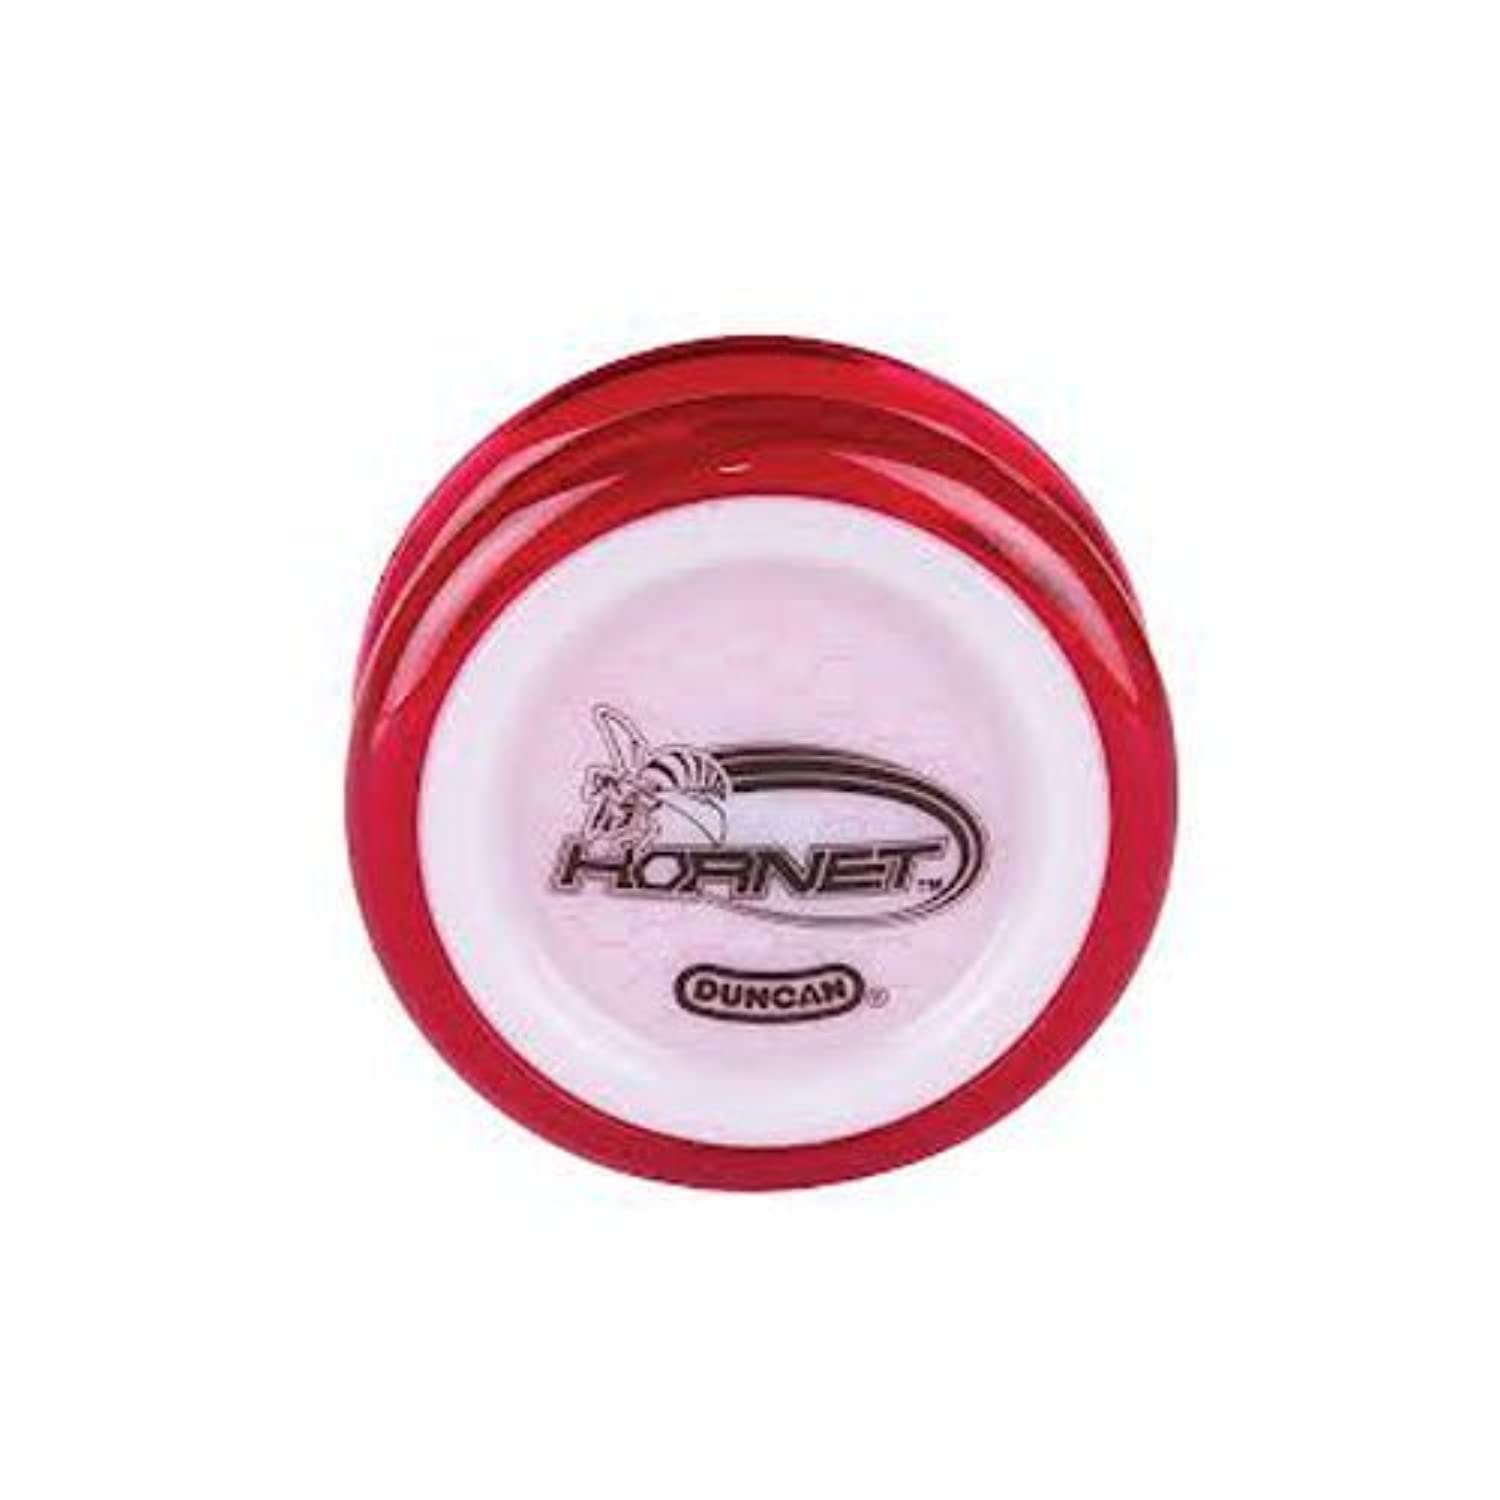 Duncan Hornet Yo-Yo - Translucent Red with White Caps by Duncan [並行輸入品]